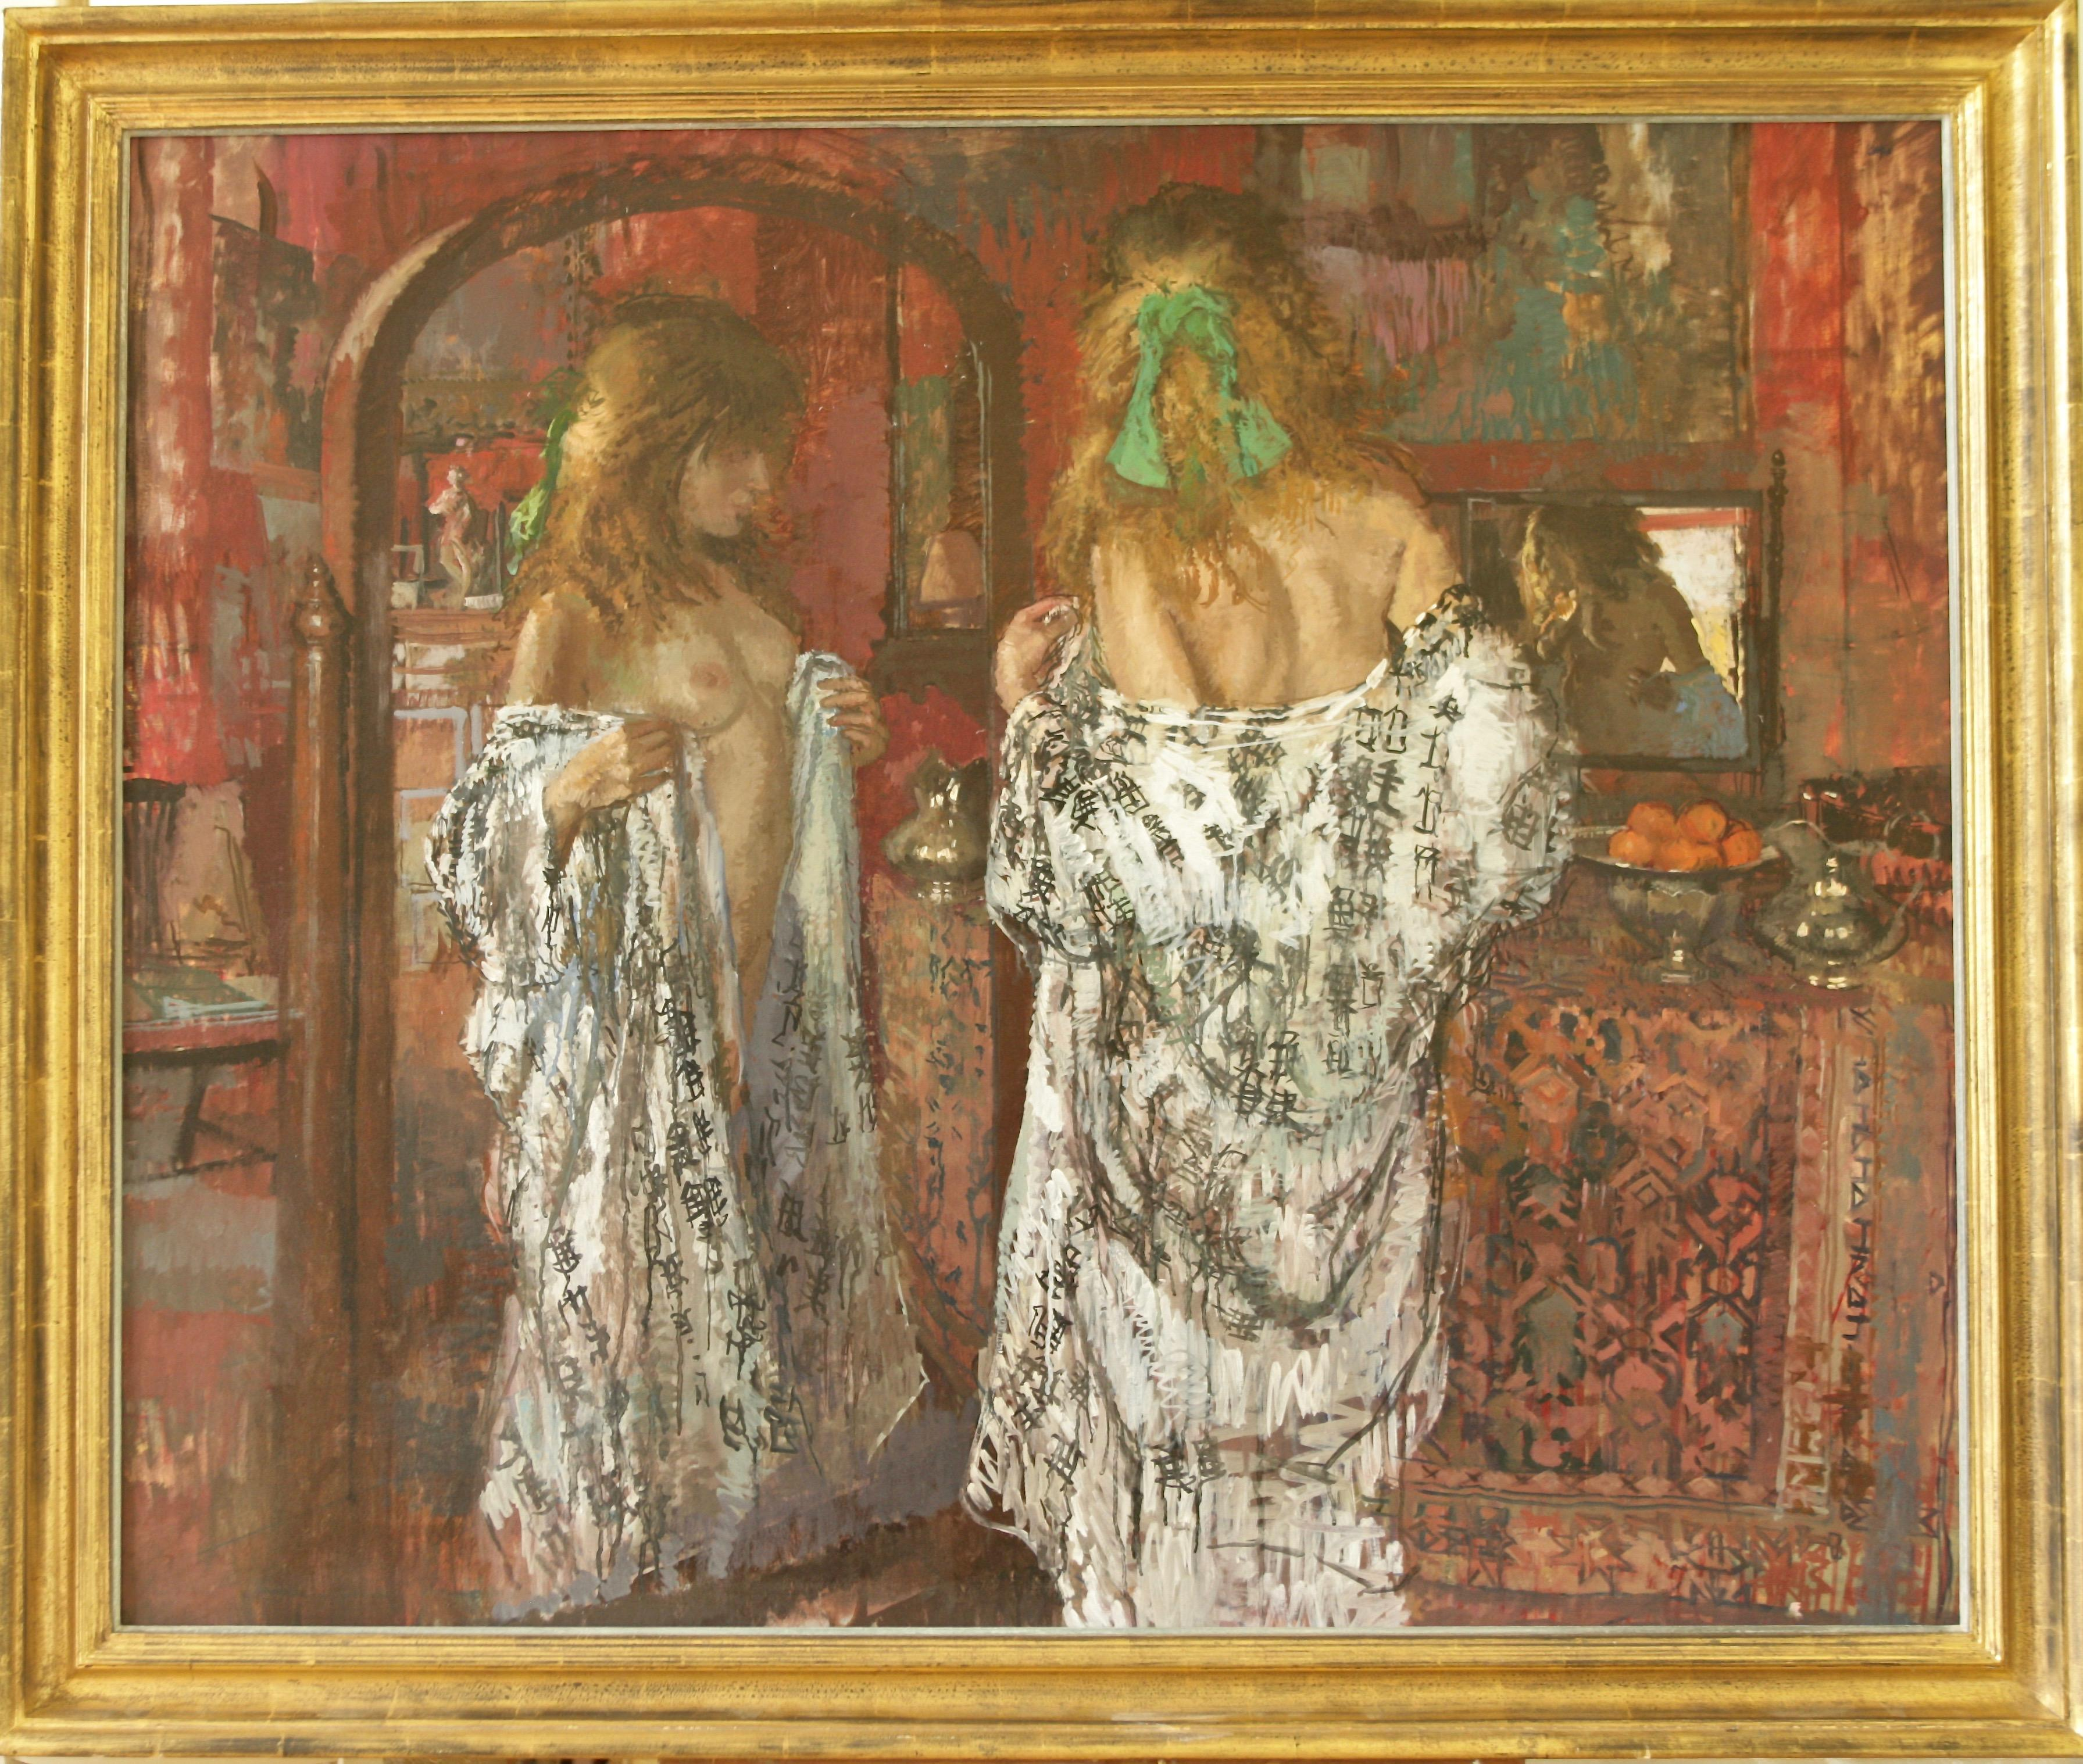 BEFORE THE MIRROW Peter Kuhfeld. contemporary British artist Royal collection